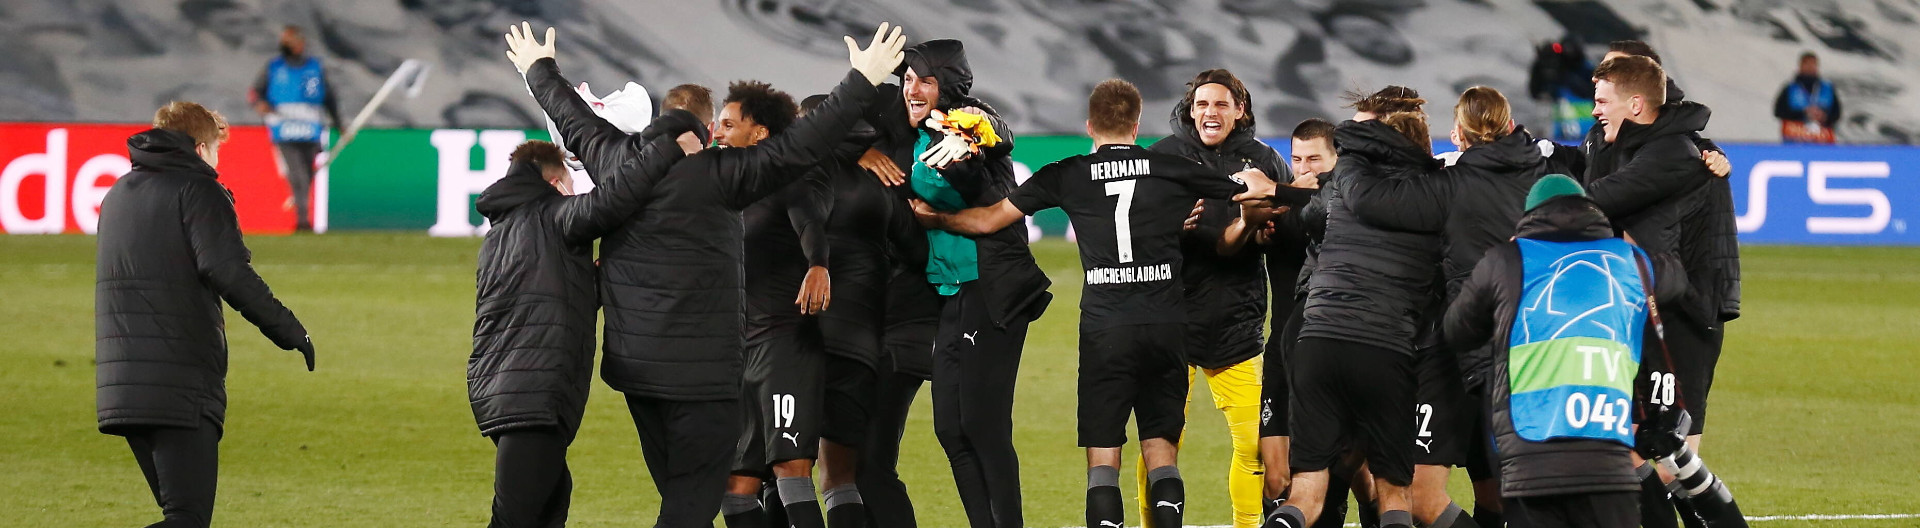 Mönchengladbach players are celebrate to have made it through the group stage after UEFA Champions League Group stage Group B match between Real Madrid CF 2-0 Borussia Mönchengladbach